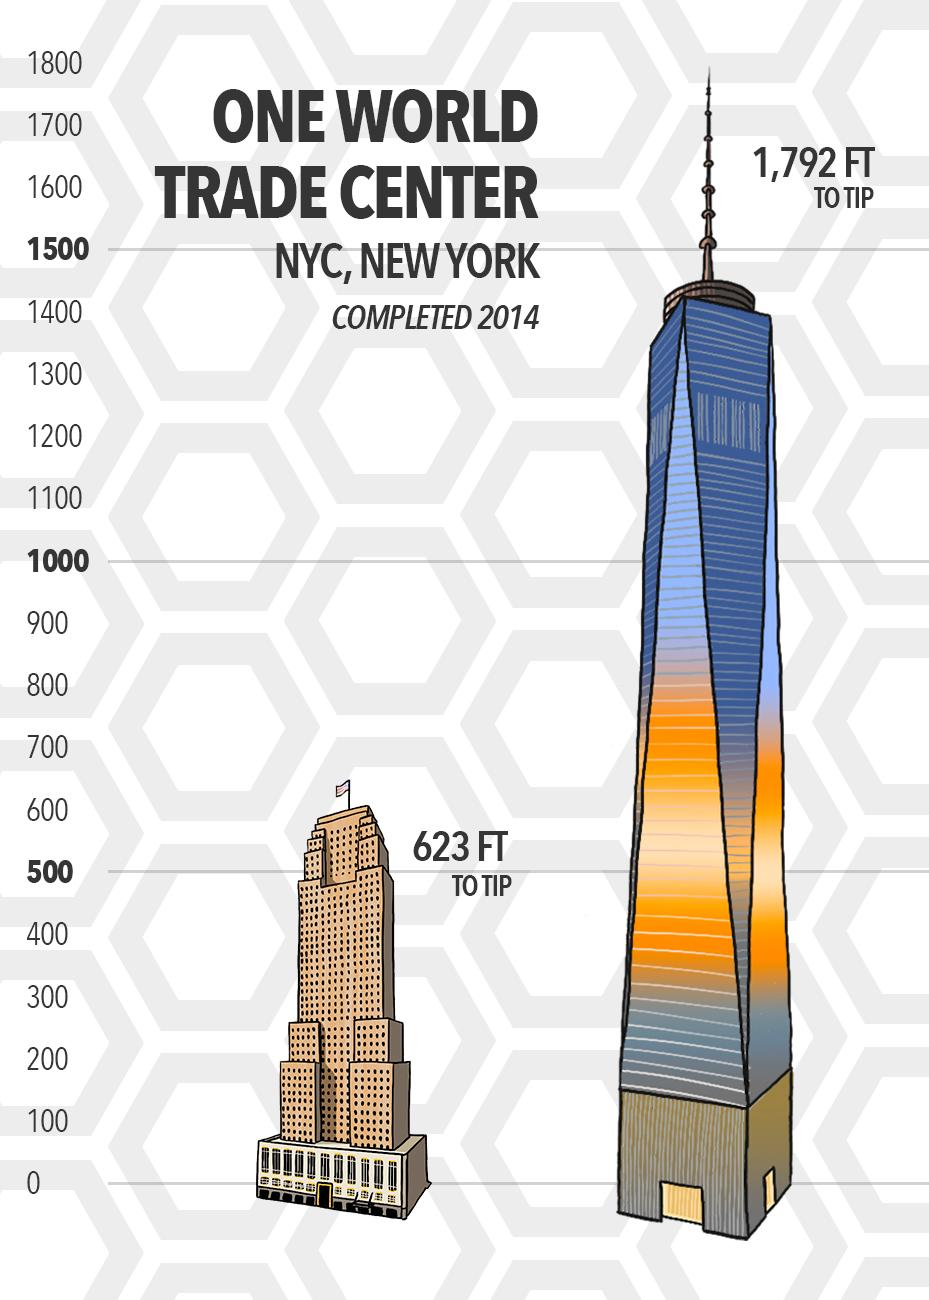 Officially the tallest building in the United States of America, NYC's One World Trade Center stands a total of 1,729 feet to its tip. In all, that's nearly three Carew Towers stacked on top of each other. One World Trade Center was completed in 2014. (Source: SkyscraperCenter.com) / Image: Phil Armstrong // Published: 5.15.19